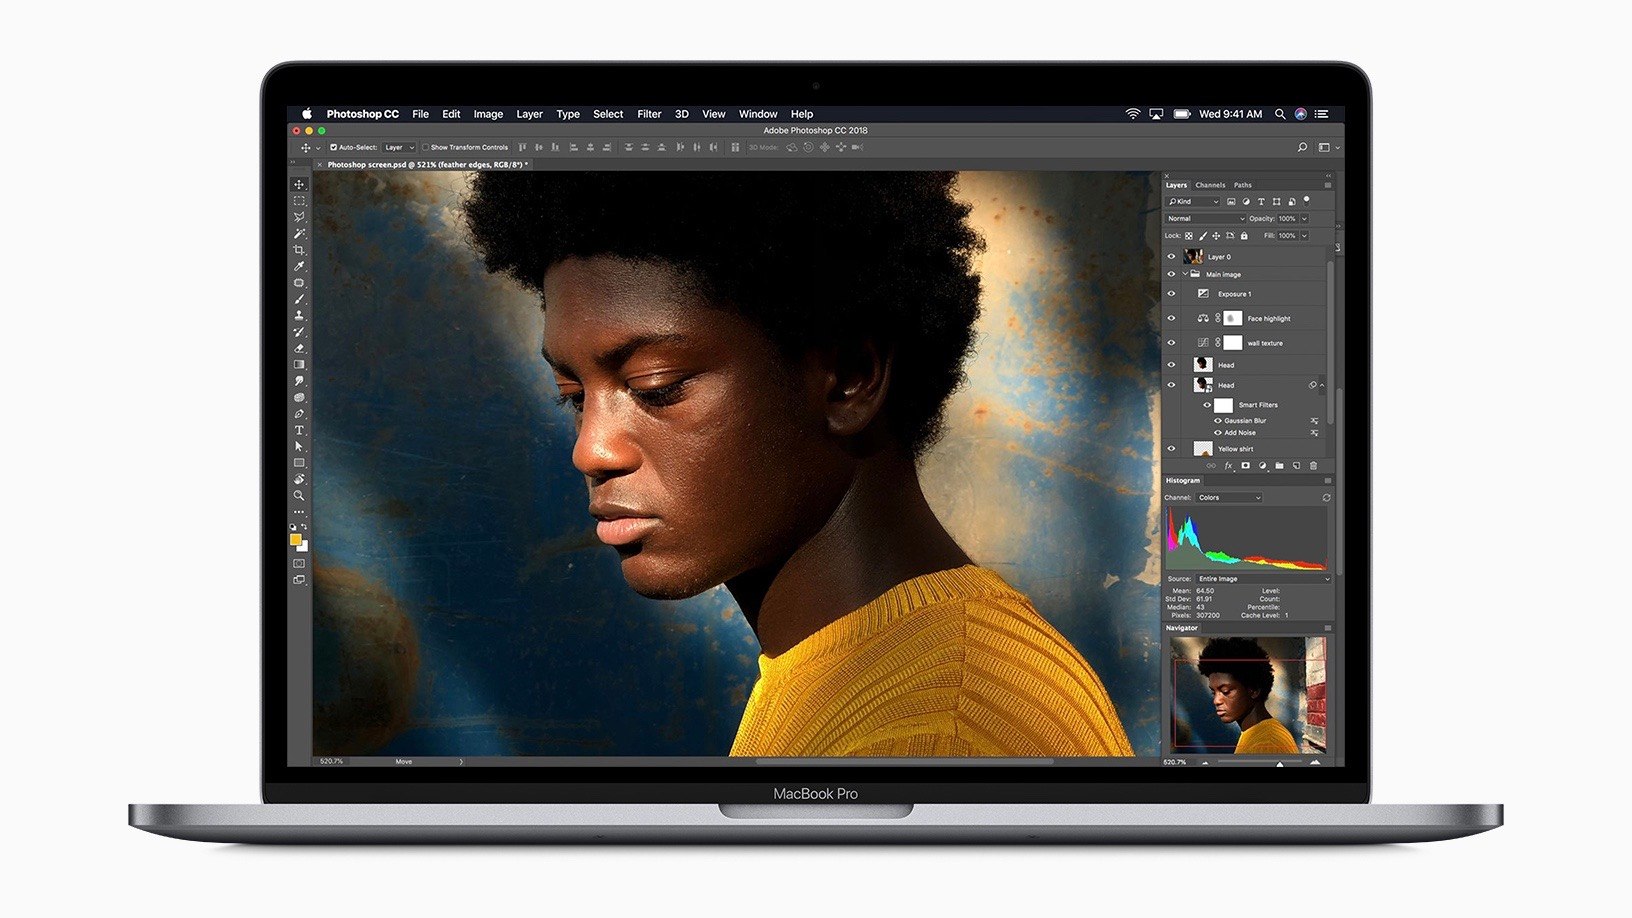 Best macbook pro for photo editing 2020